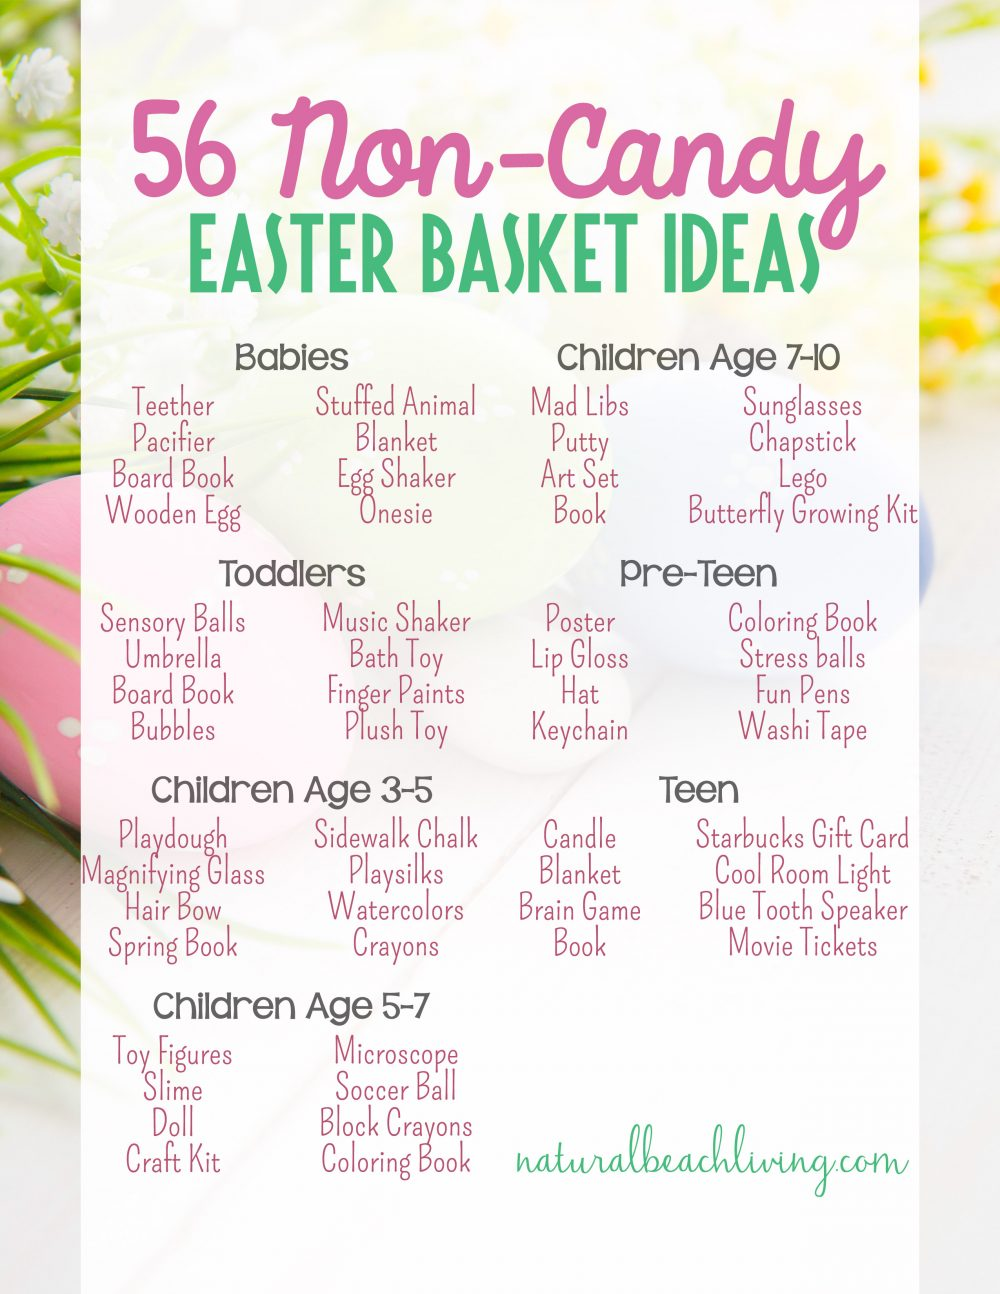 56 Non-Candy Easter Basket Ideas for babies, toddlers, preschoolers, teens and more